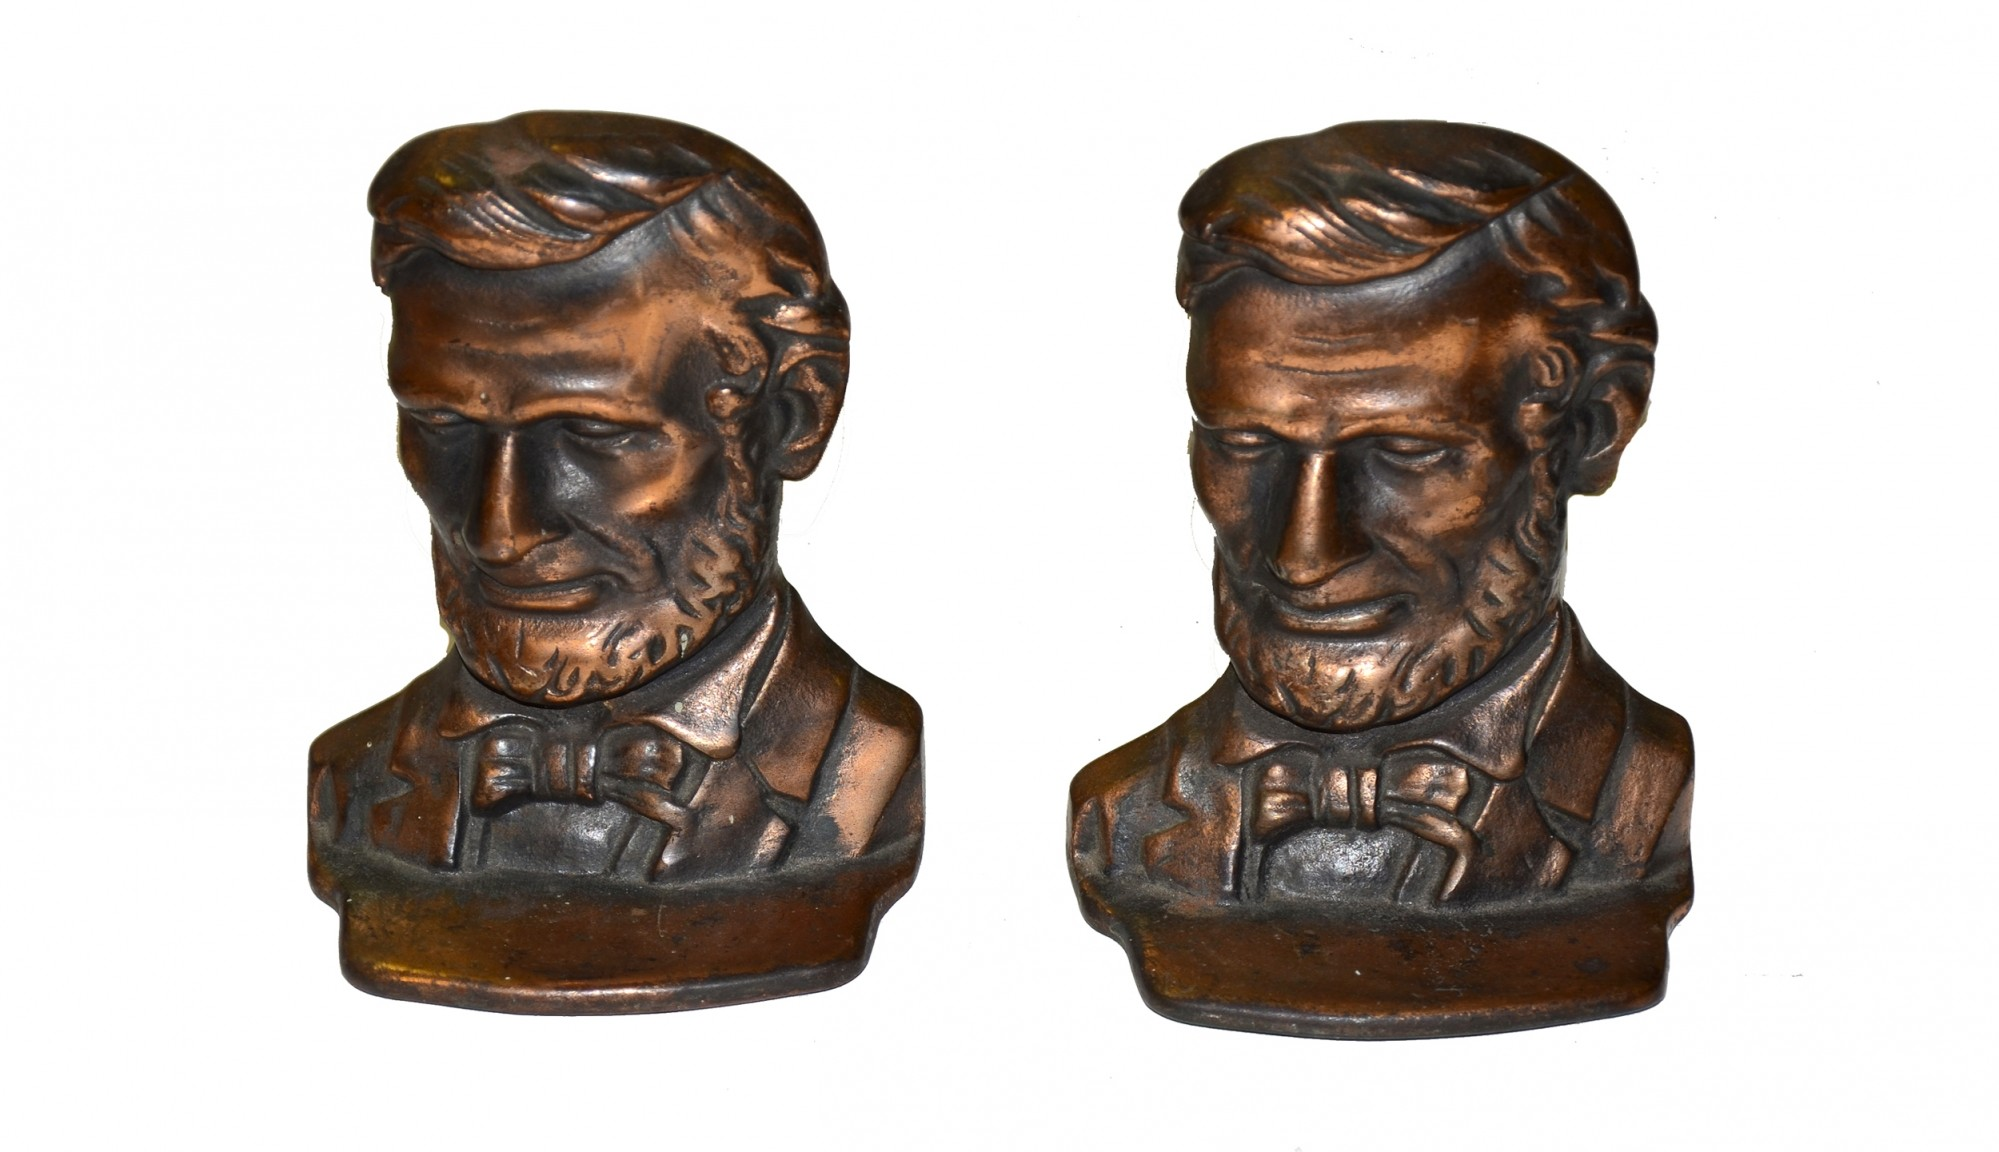 ABRAHAM LINCOLN BOOK ENDS